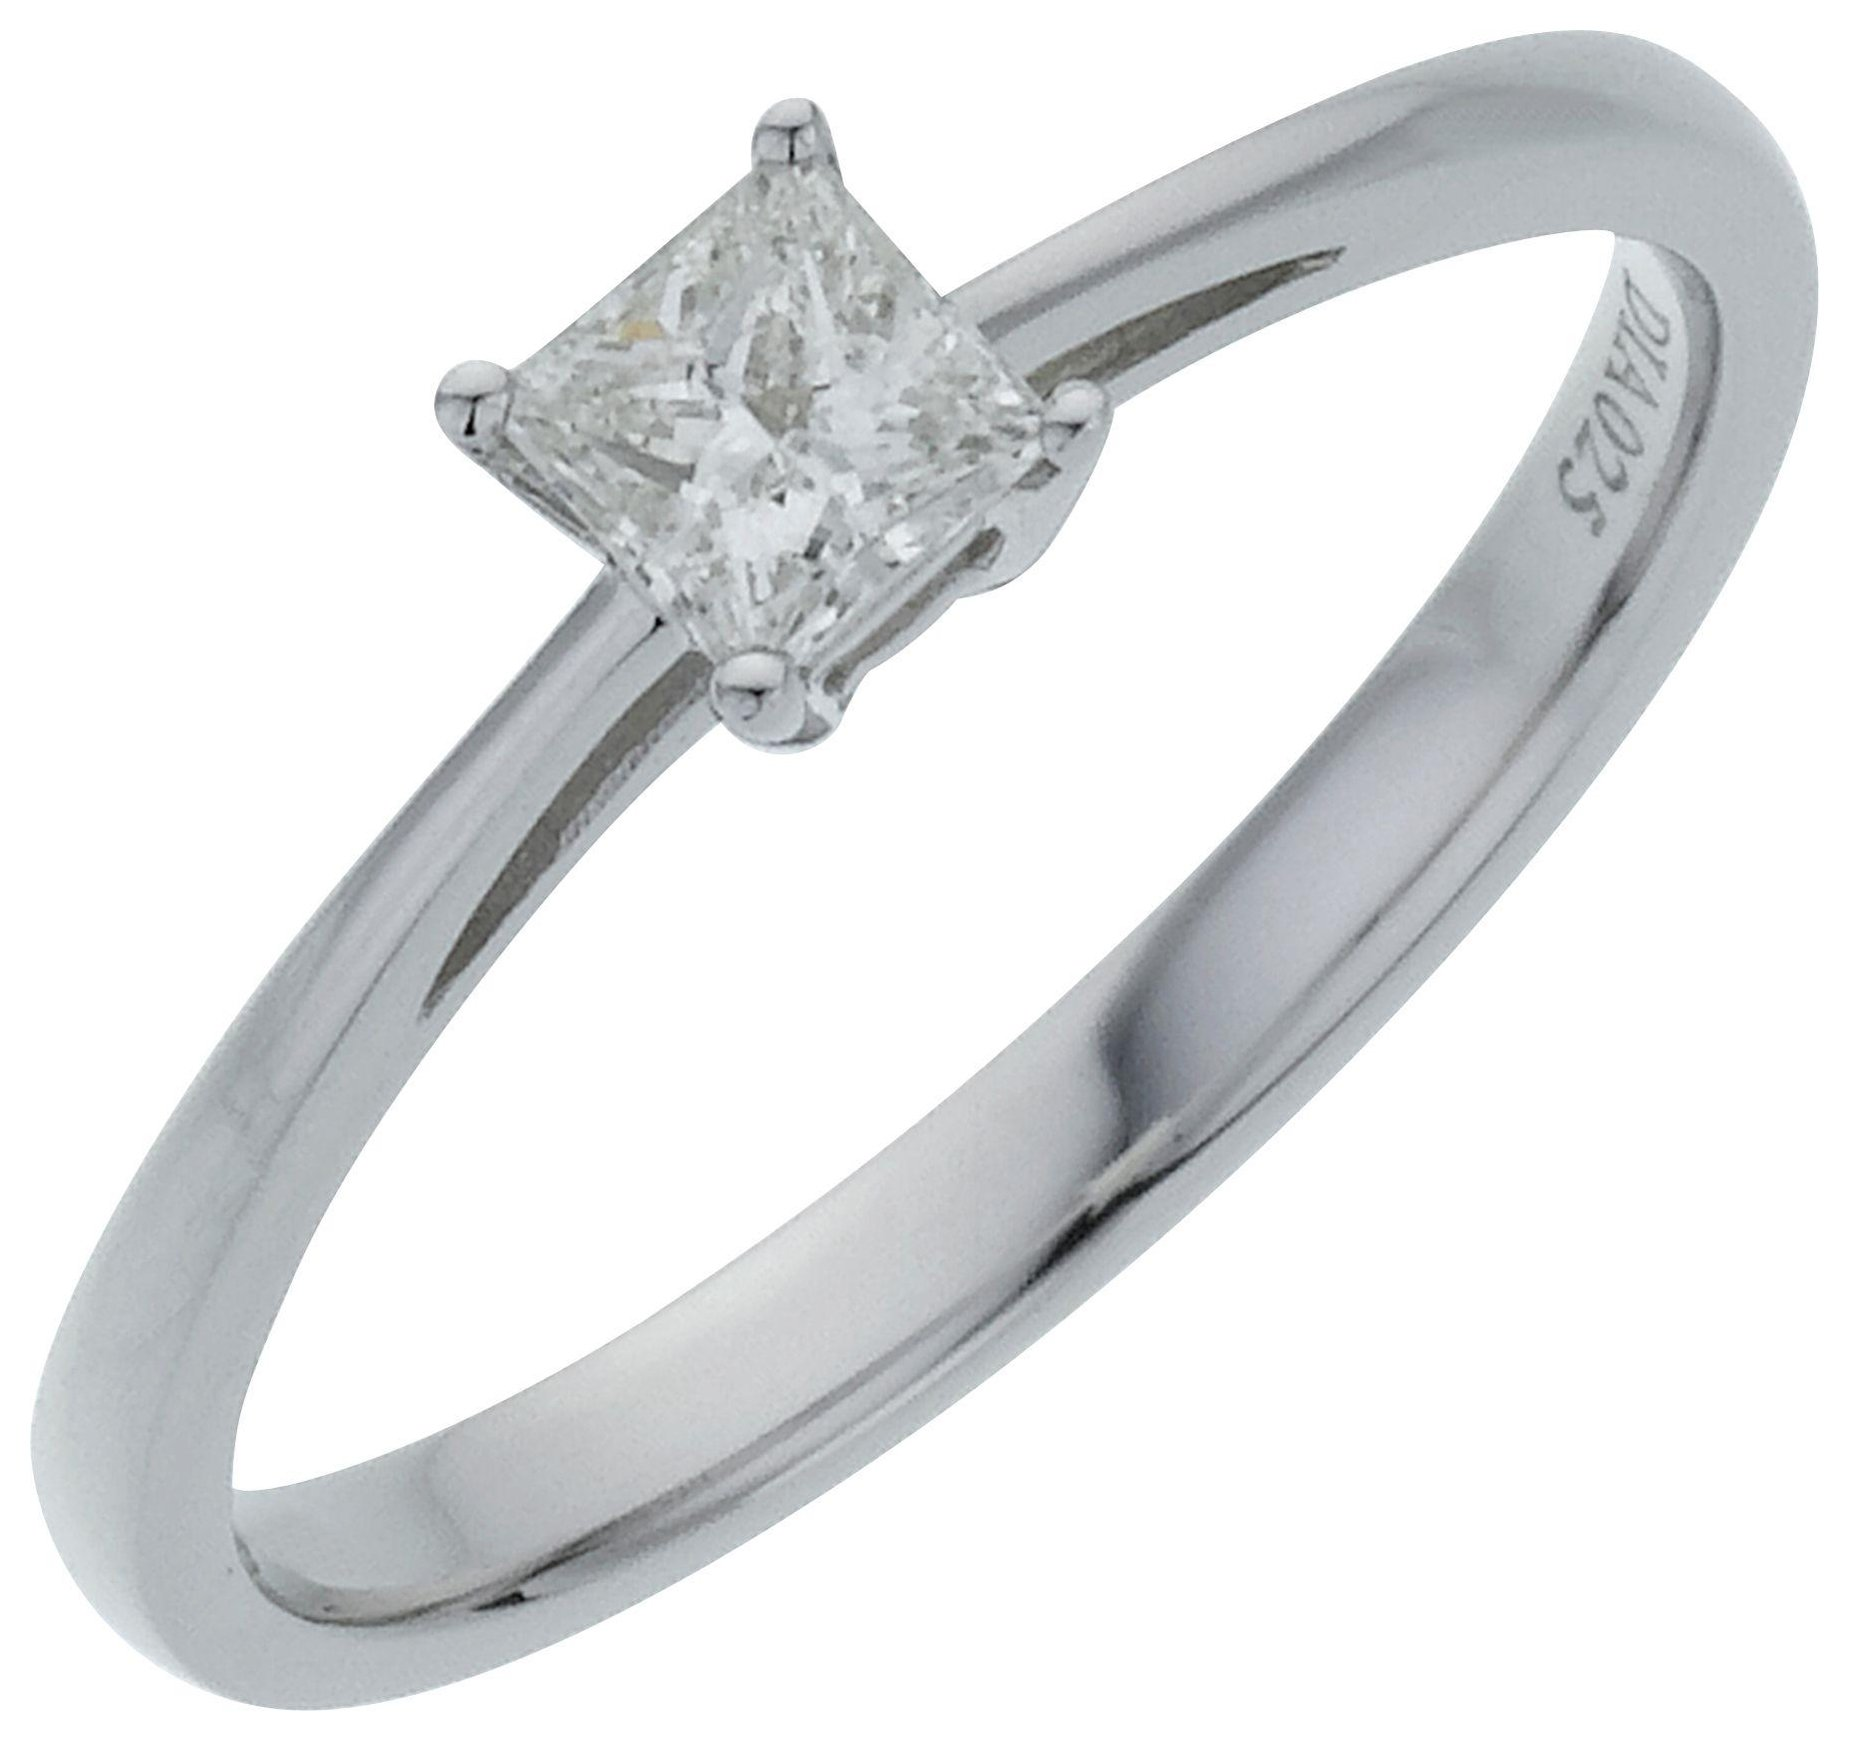 18 Carat White Gold 025 Carat Diamond - Princess Cut Diamond - Ring - Q